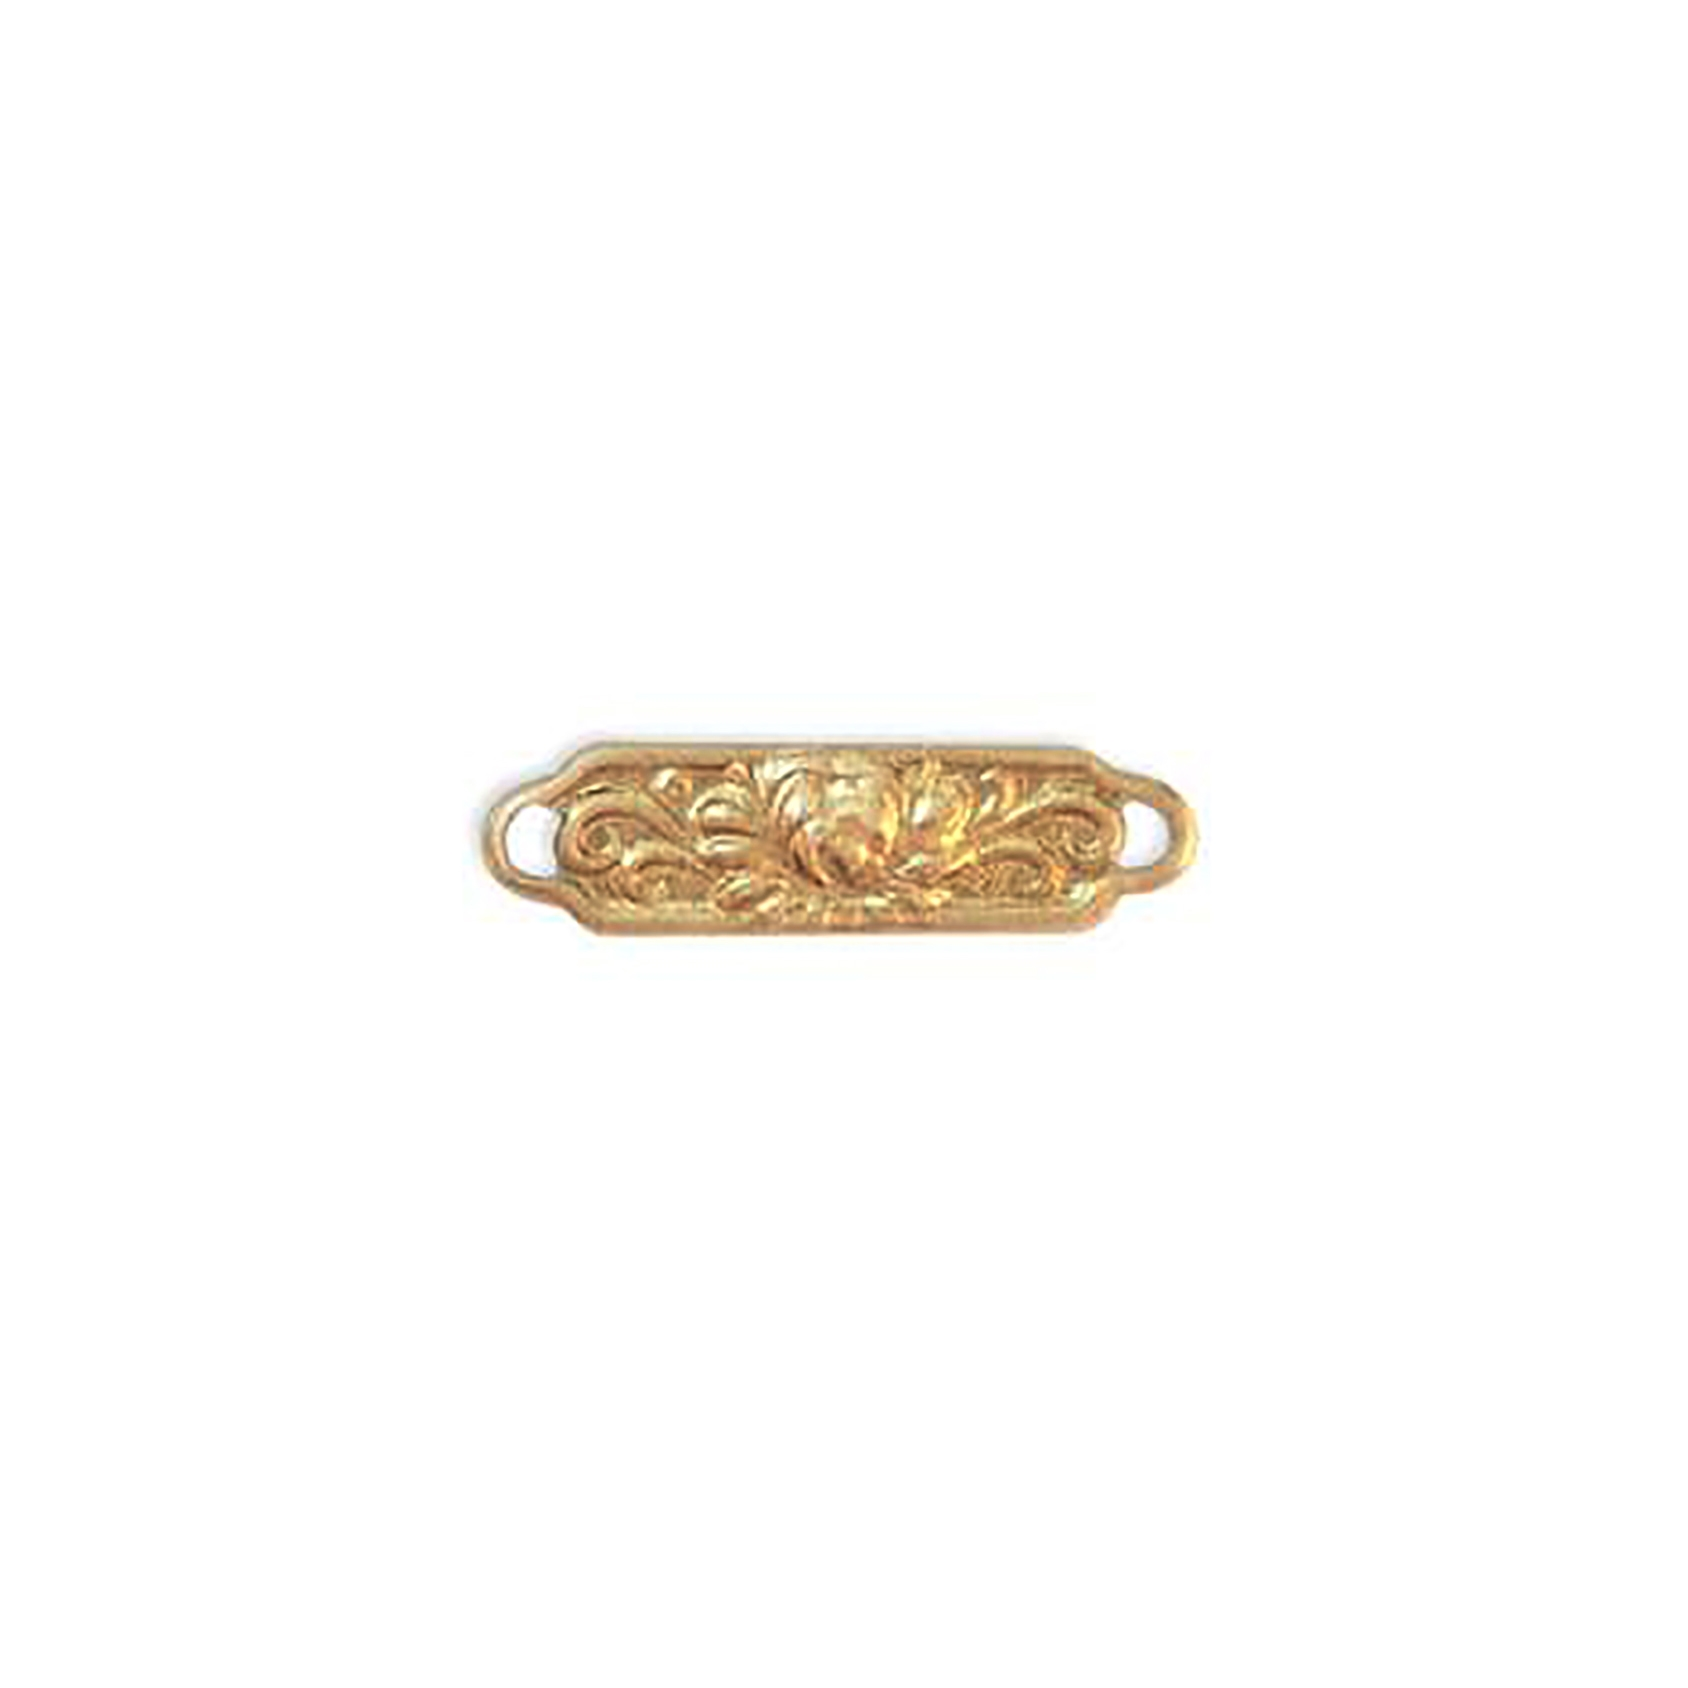 blooming flower connector, raw brass, unplated, flower, connector, flower connector, blooming flower, jewelry making, jewelry supplies, vintage supplies, jewelry connector, B'sue Boutiques, charm, earrings, chain connectors, jewelry findings, 09275